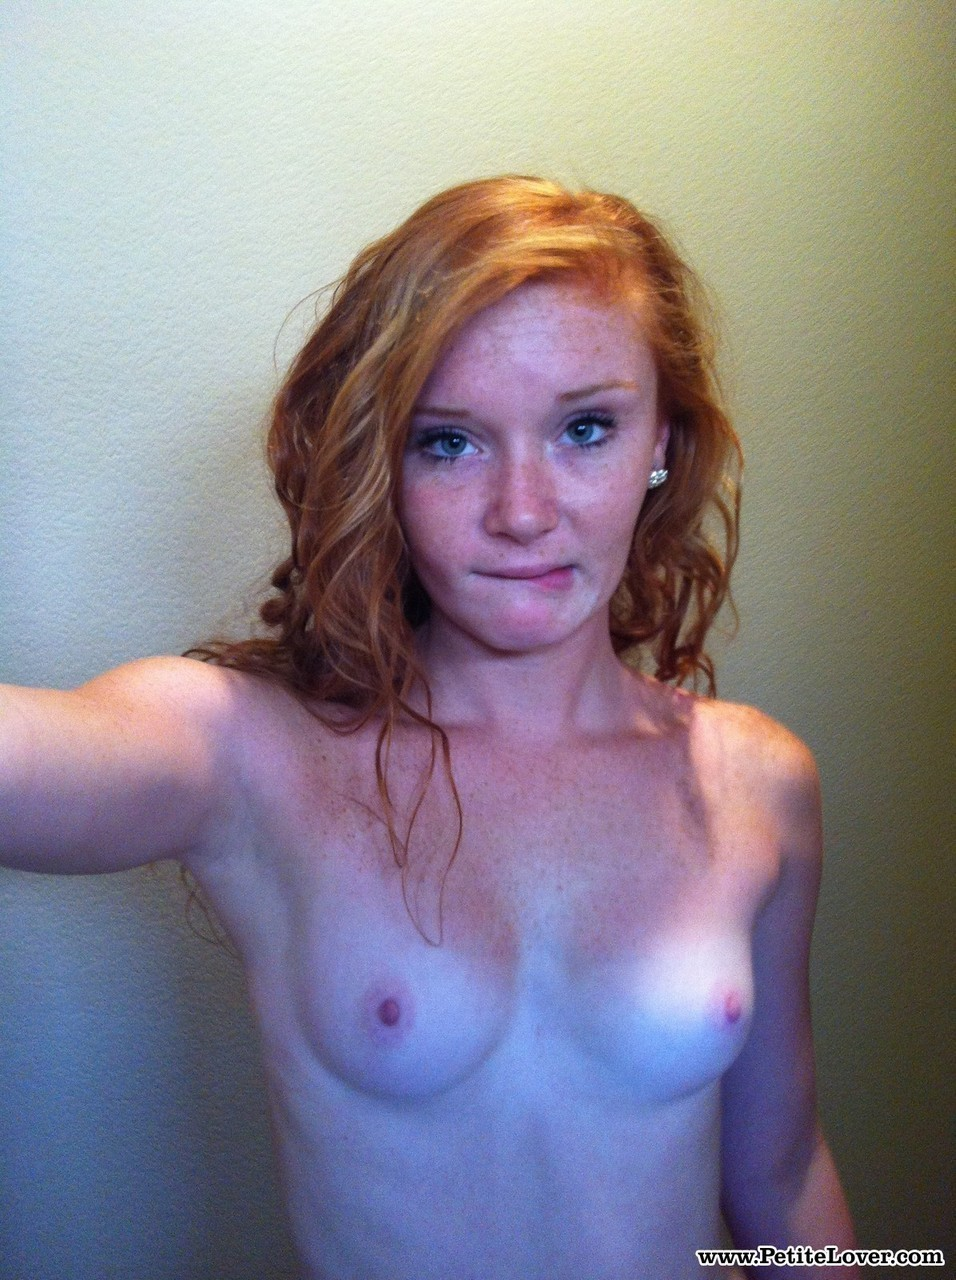 The Hottest Amateur All Time